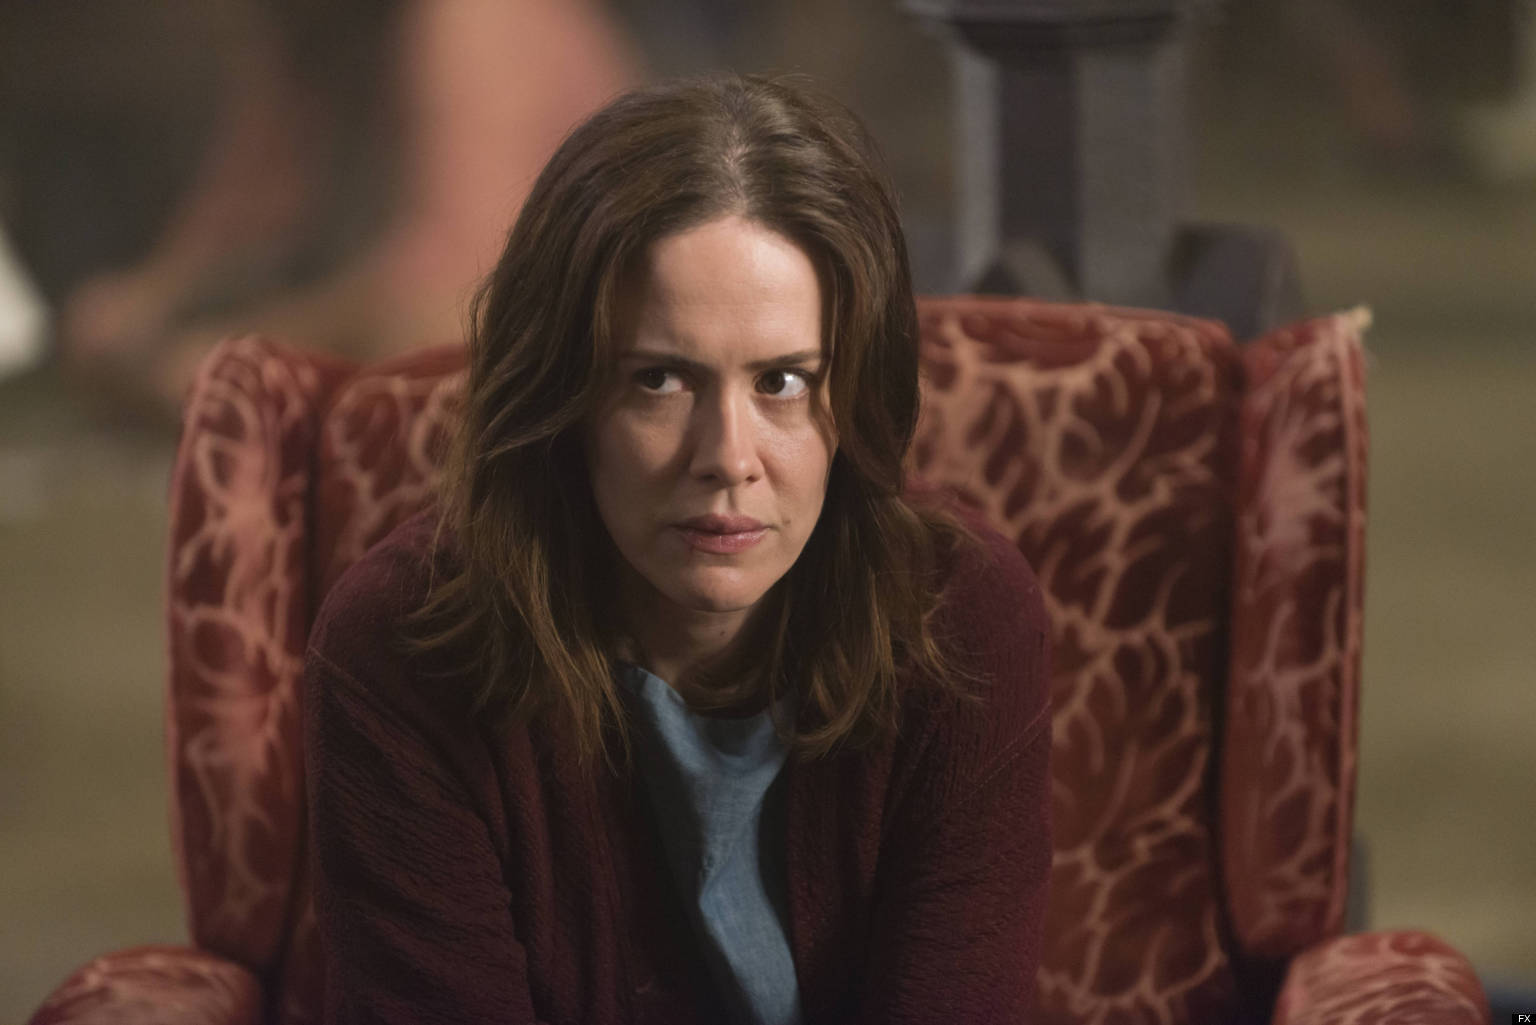 AMERICAN HORROR STORY The Name Game -- Episode 210 (Airs Wednesday, January 2, 10:00 pm e/p) -- Pictured: Sarah Paulson as Lana Winters -- CR: Prashant Gupta/FX